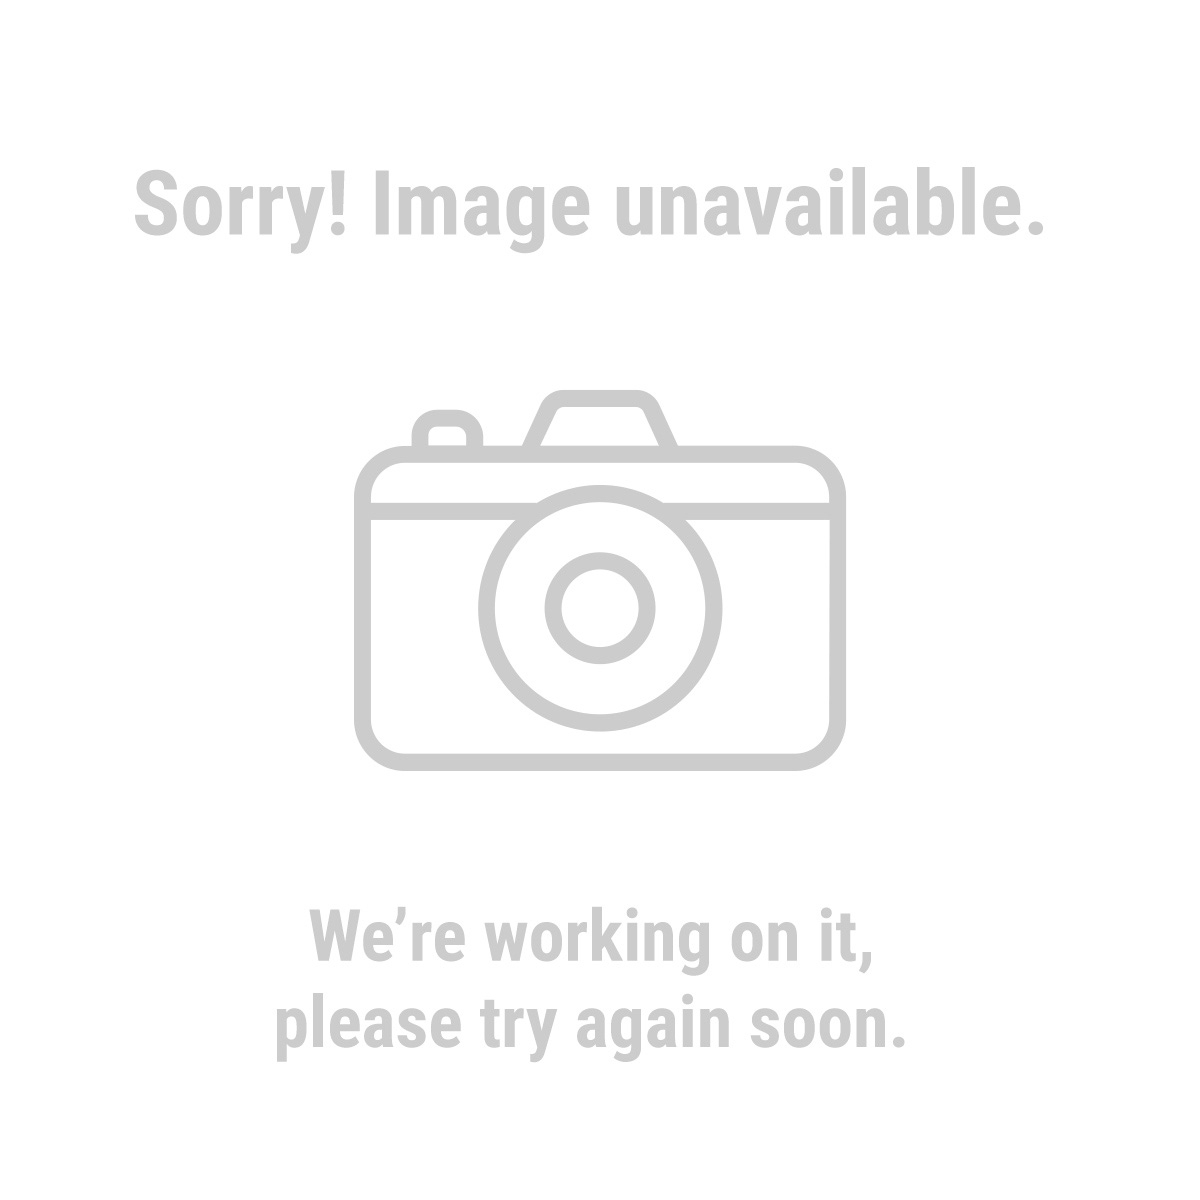 Chicago Electric Power Tools 37793 2-1/2 Horsepower Plunge Router